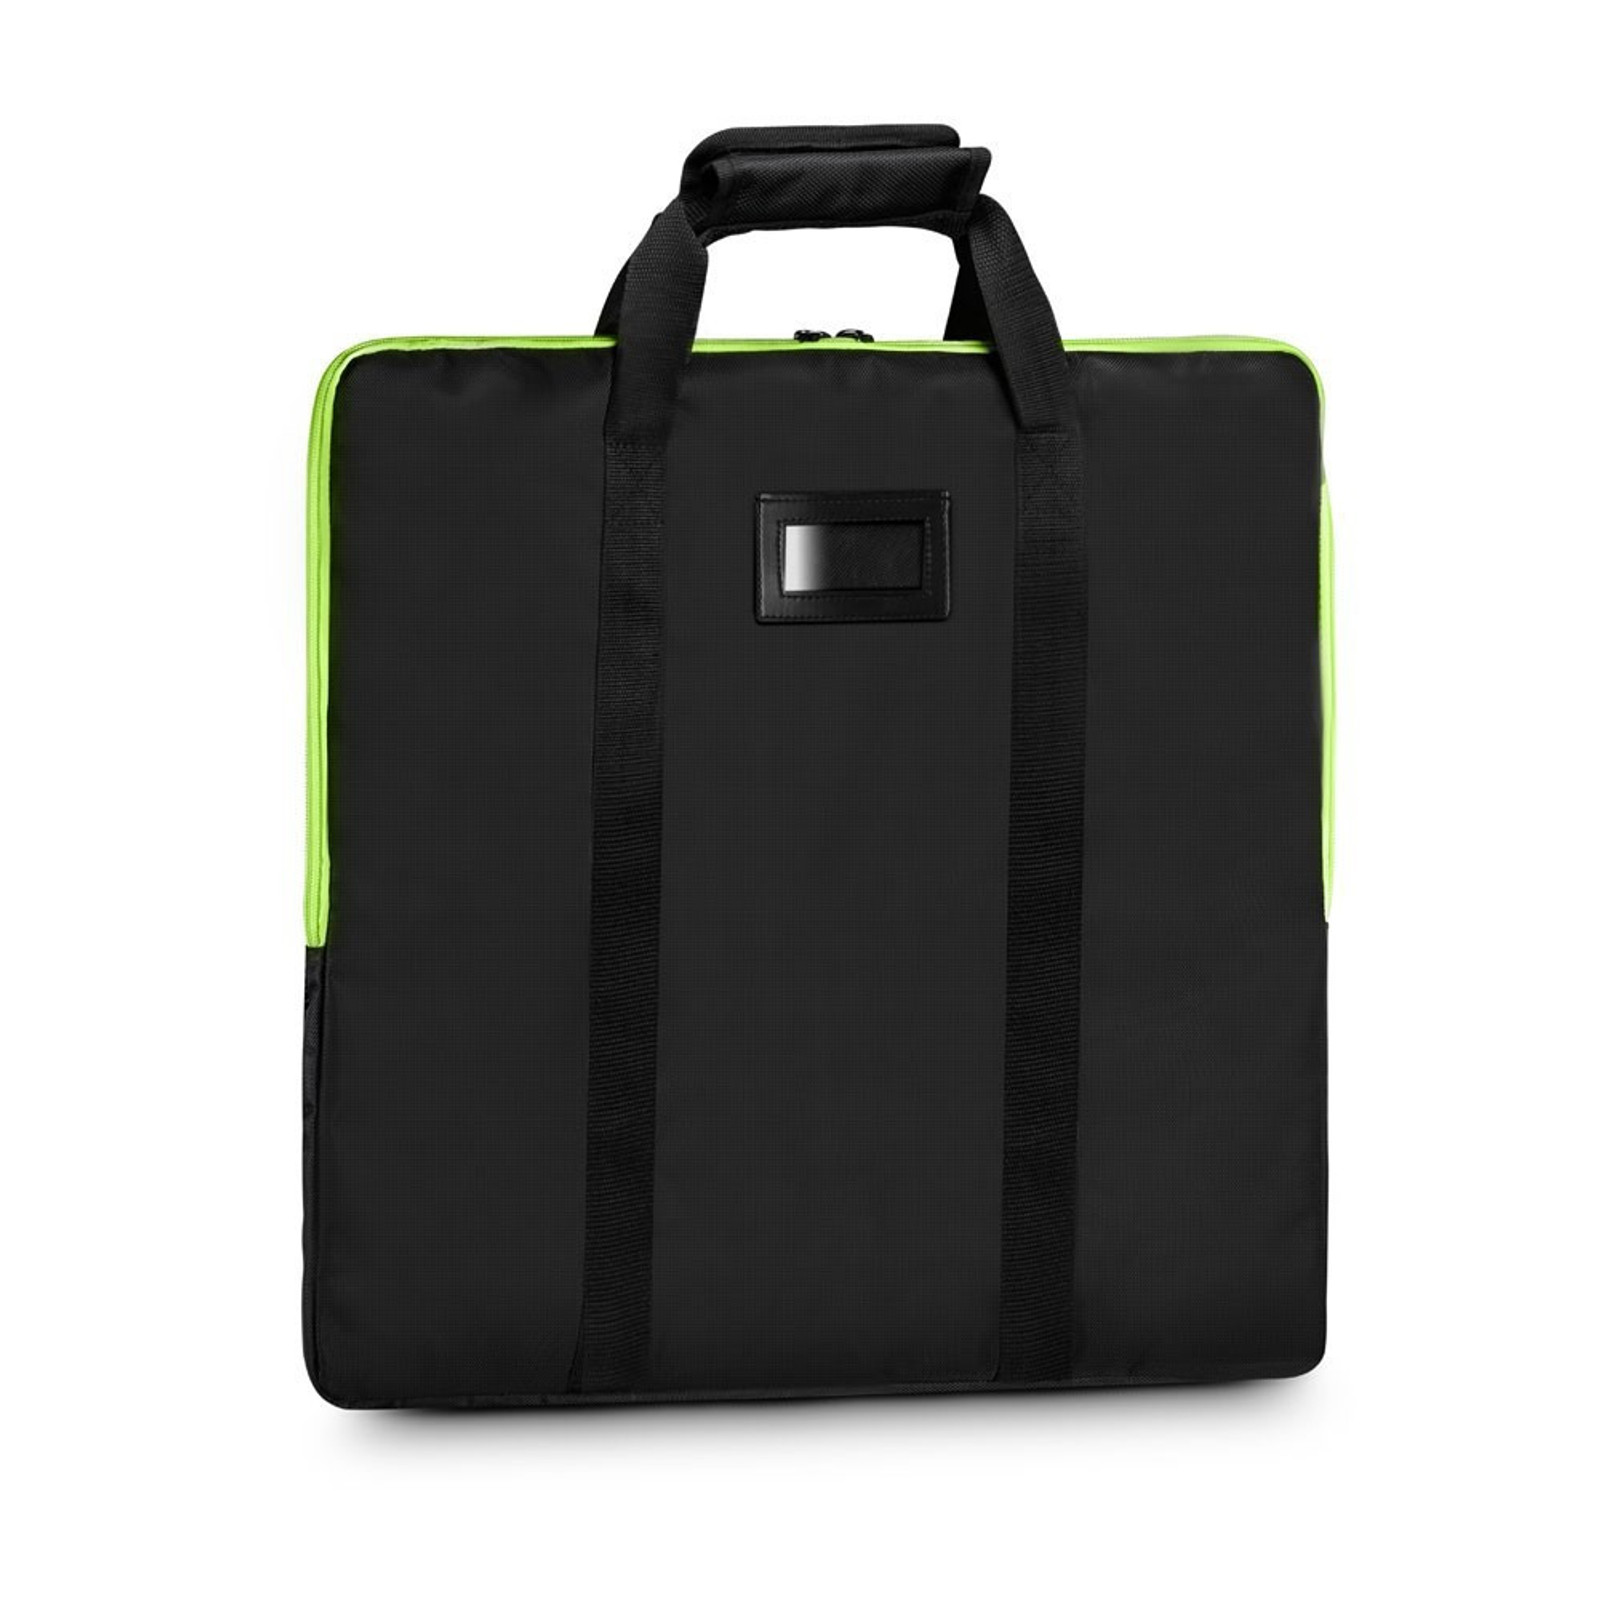 GRAVITY GBGPD1 BAG FOR SQUARE BASE PLATE